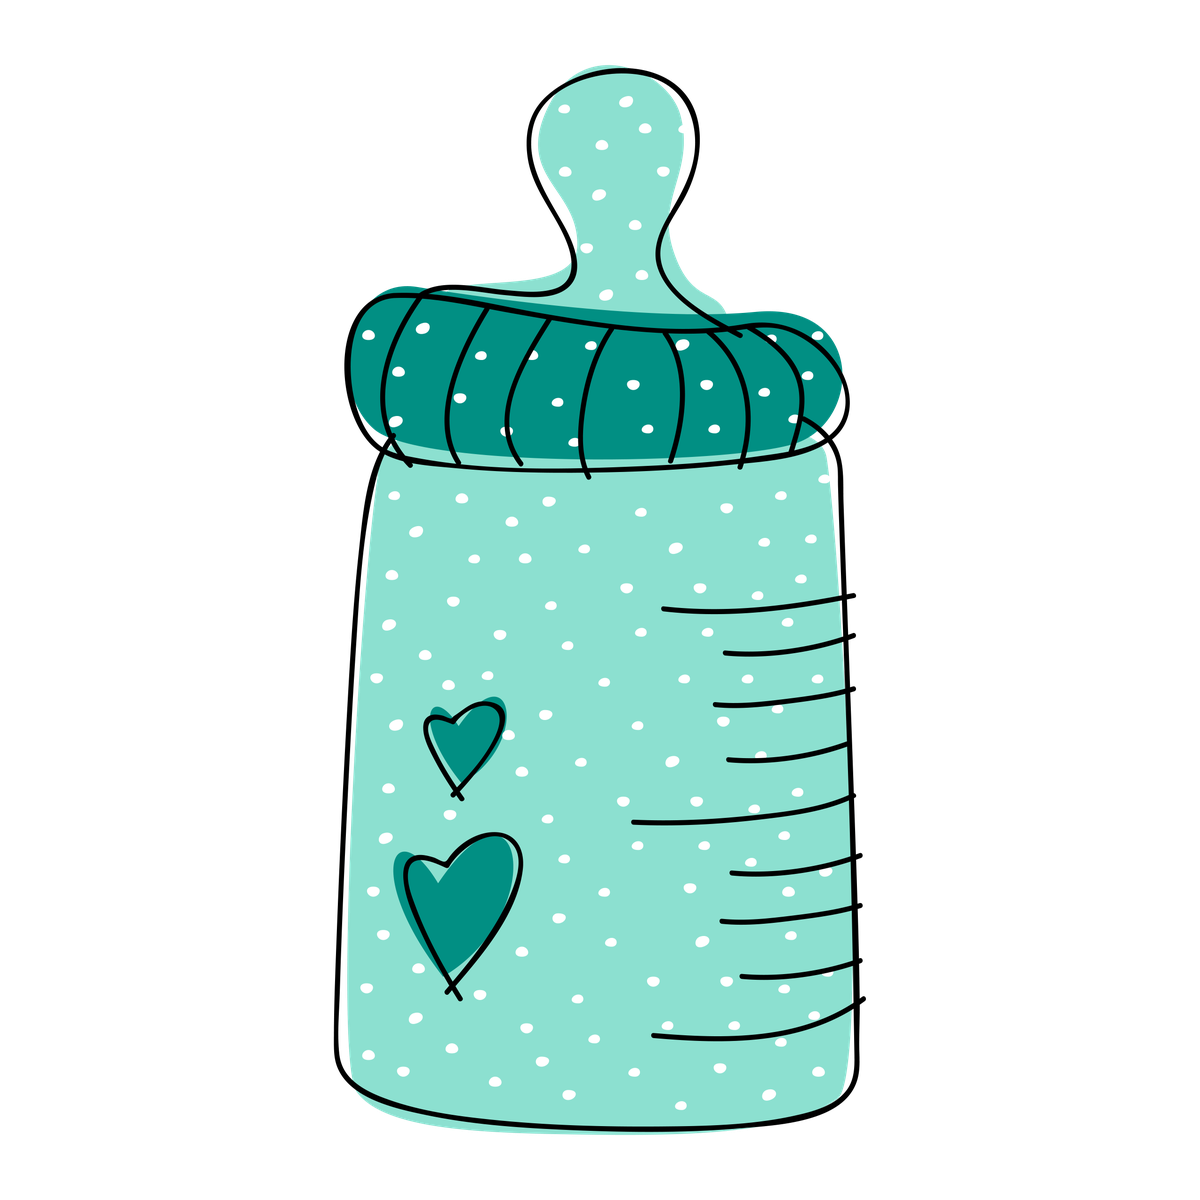 Free Downloadable Baby Bottle Clipart Free Downloads Baby Bottle Clipart You Can Use These Templates Fo In 2020 Baby Bottles Toddler Art Projects Free Baby Stuff